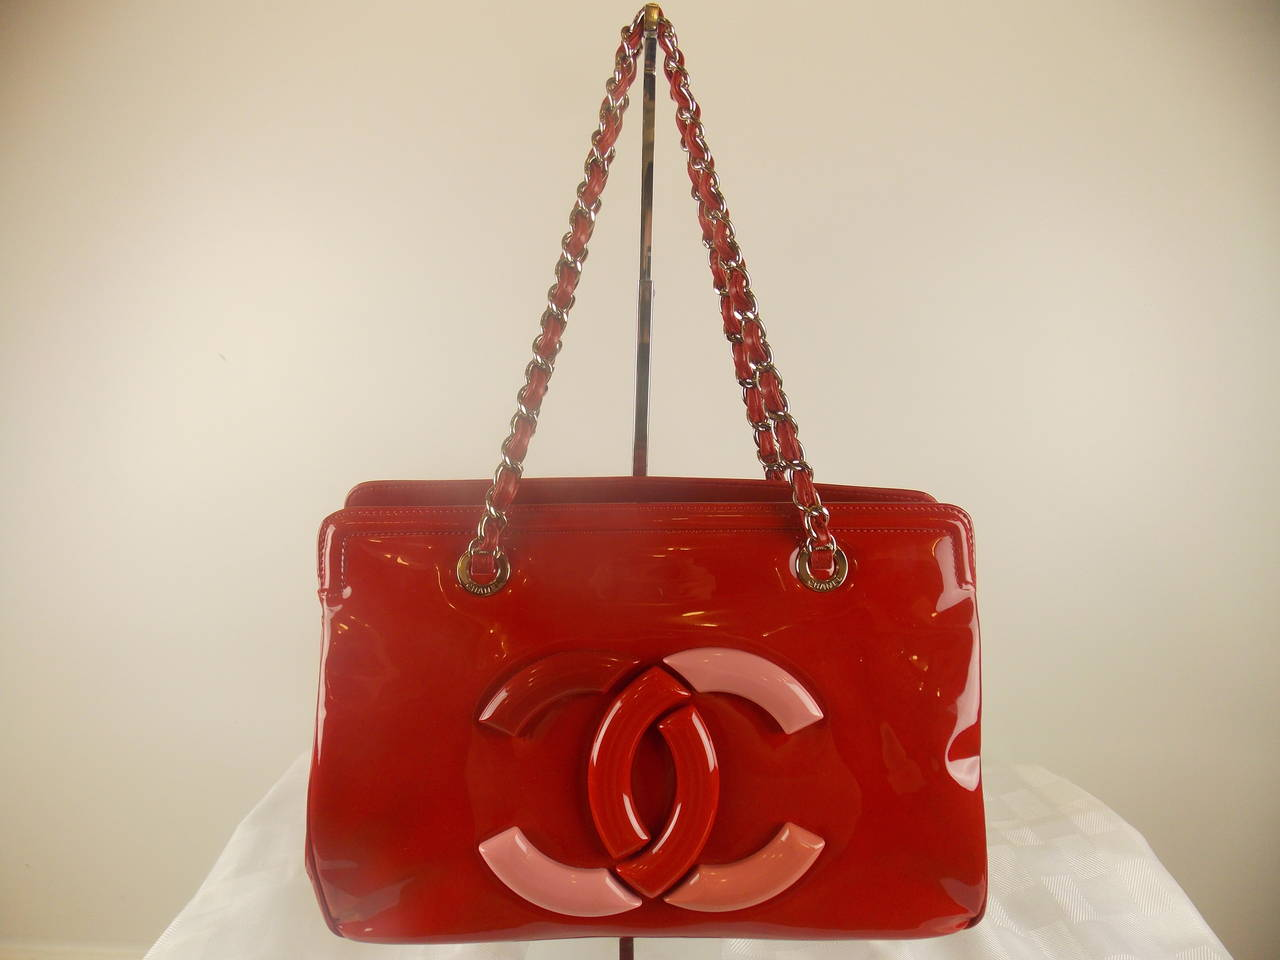 Chanel Red Patent Leather Lipstick Tote at 1stdibs